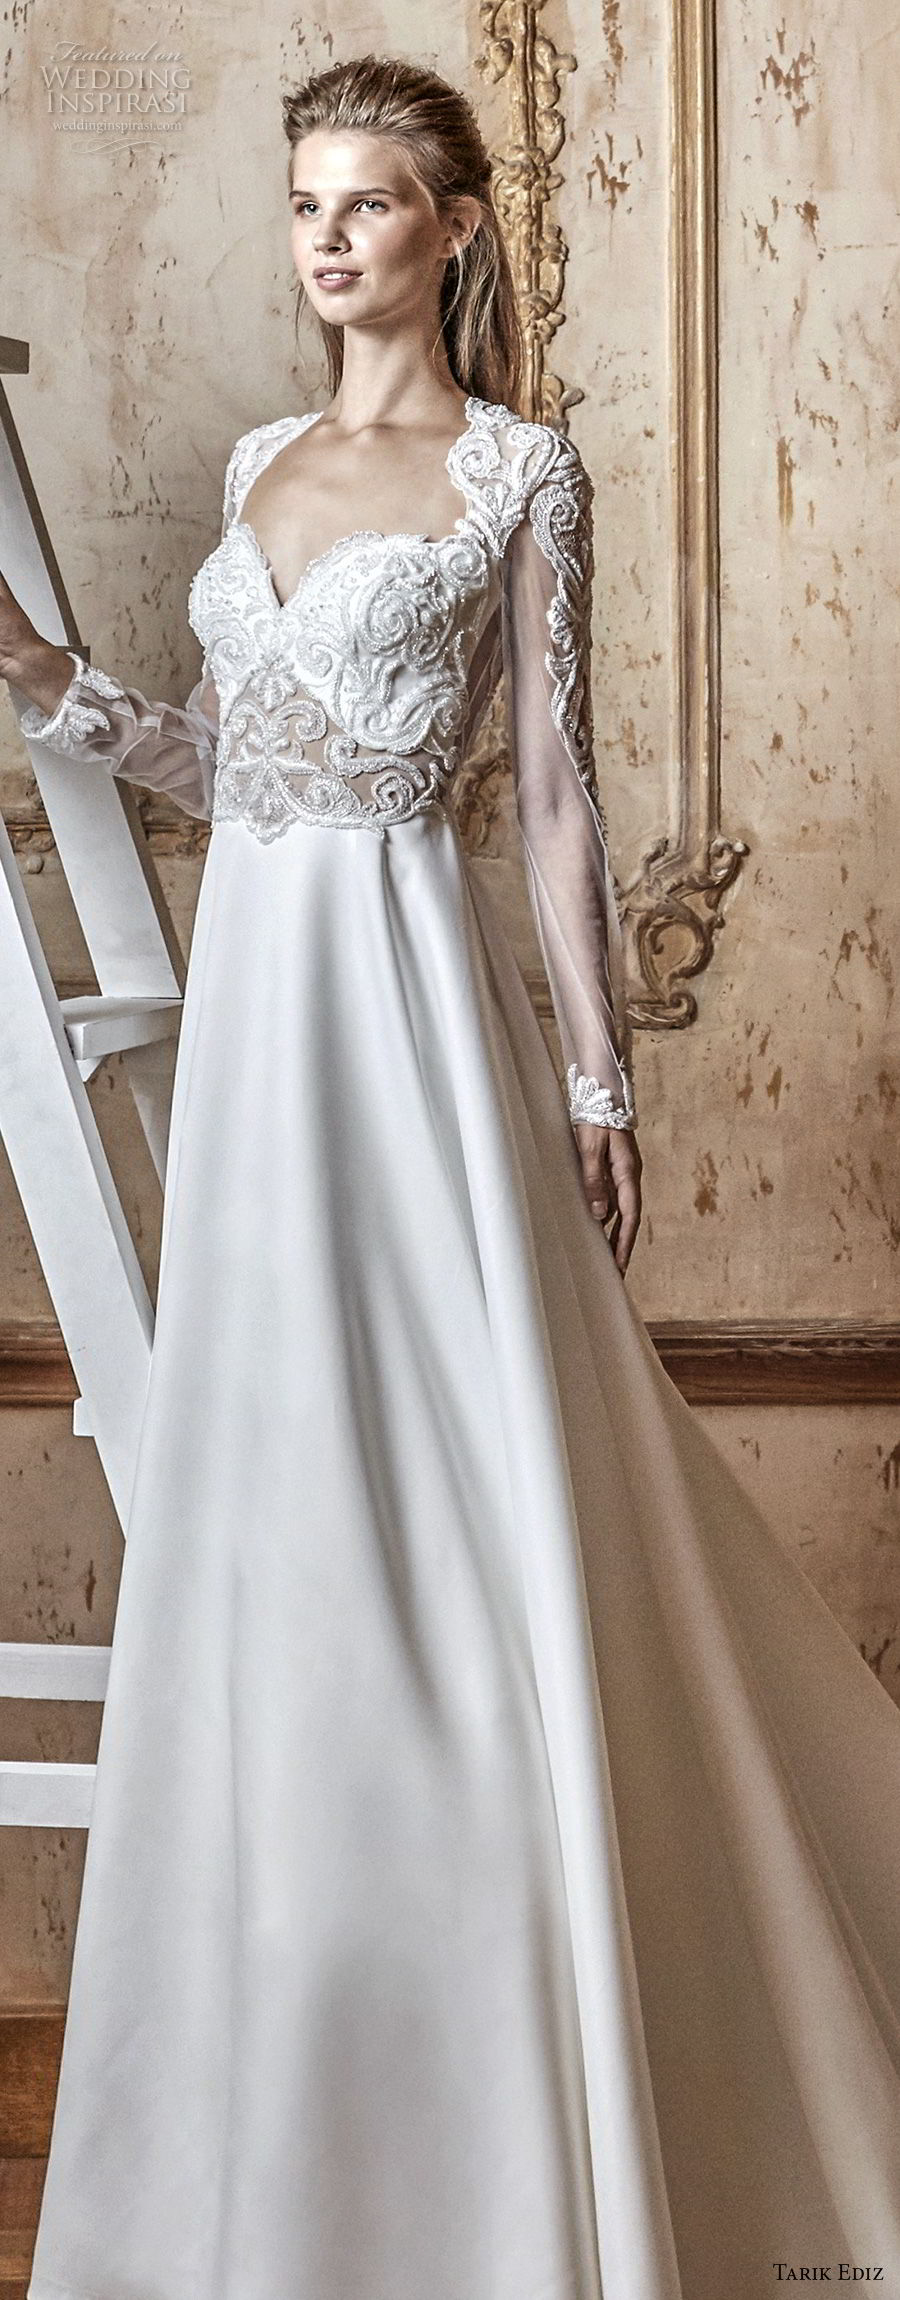 tarik ediz 2017 bridal long sleeves sweetheart neckline heavily embellished bodice modified a line wedding dress keyhole back royal train (8) lv